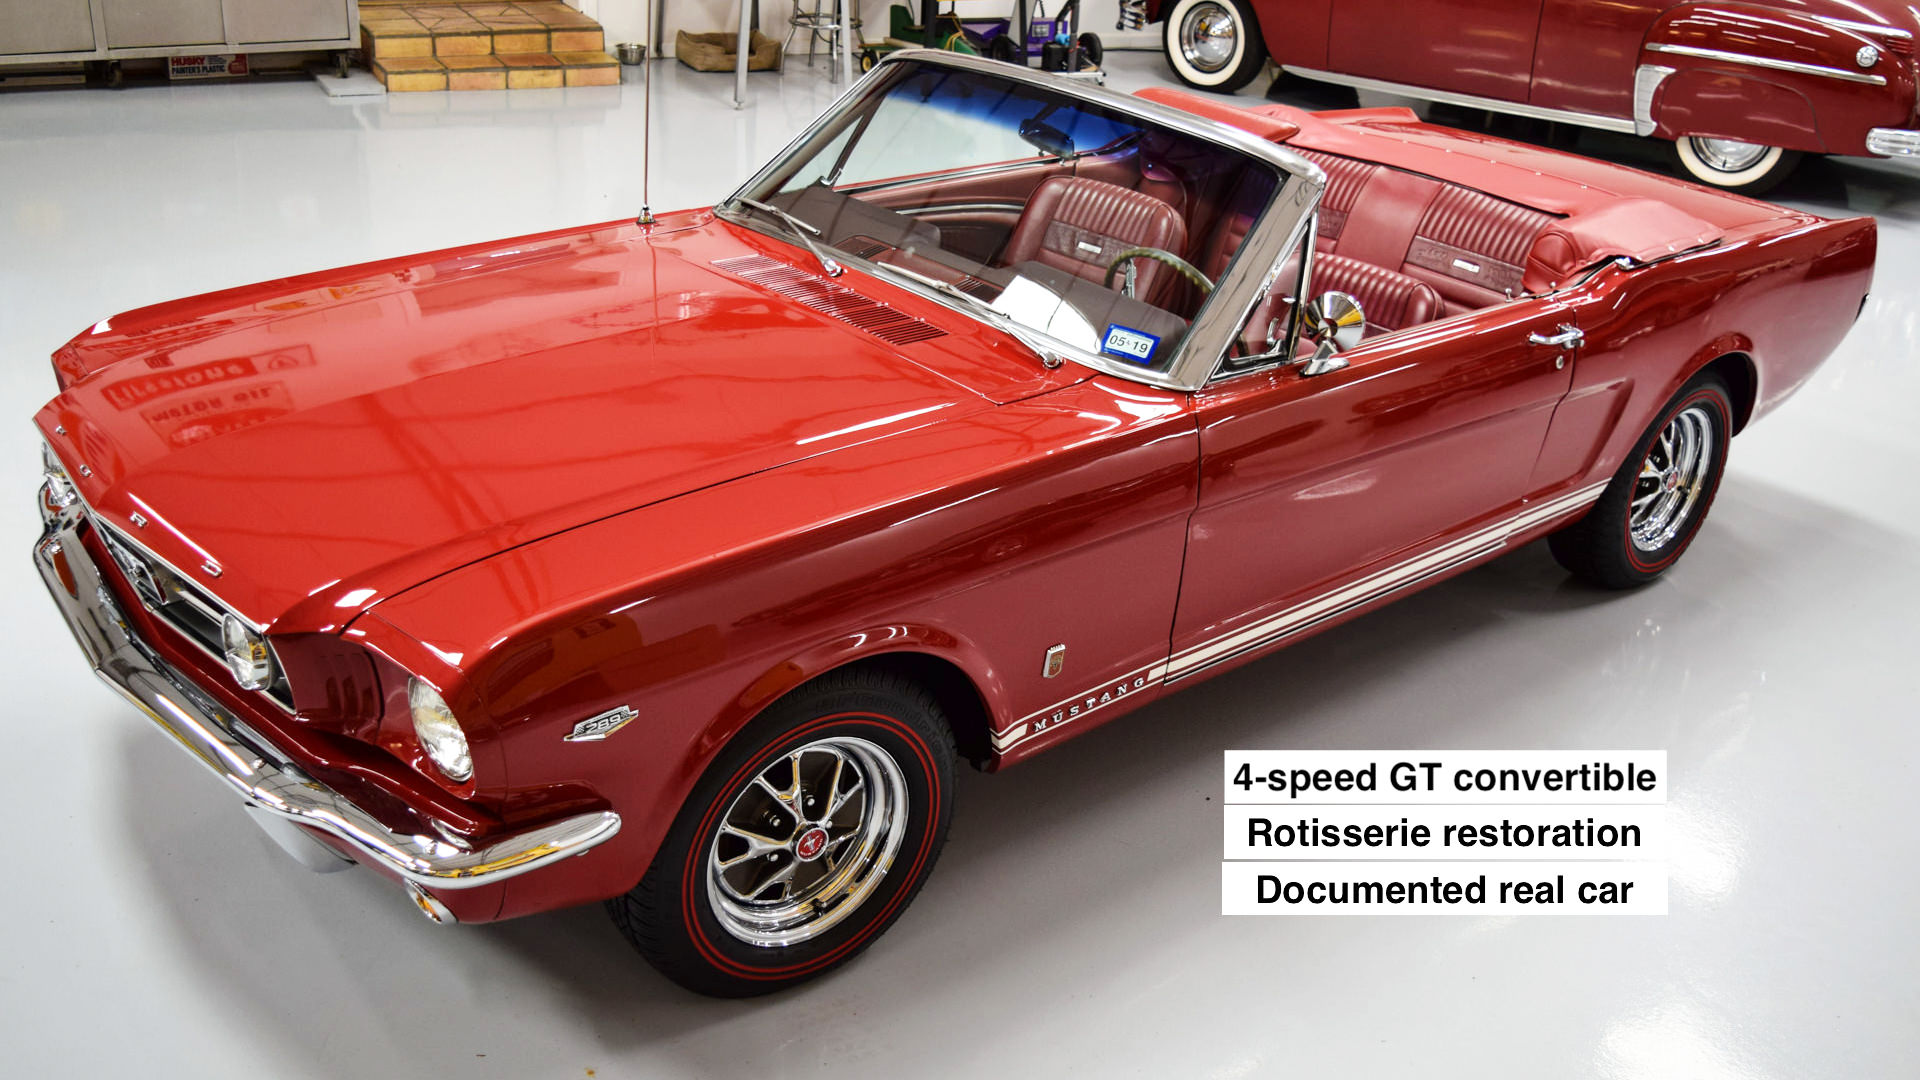 1966 Mustang GT convertible Candy Apple Red A-code